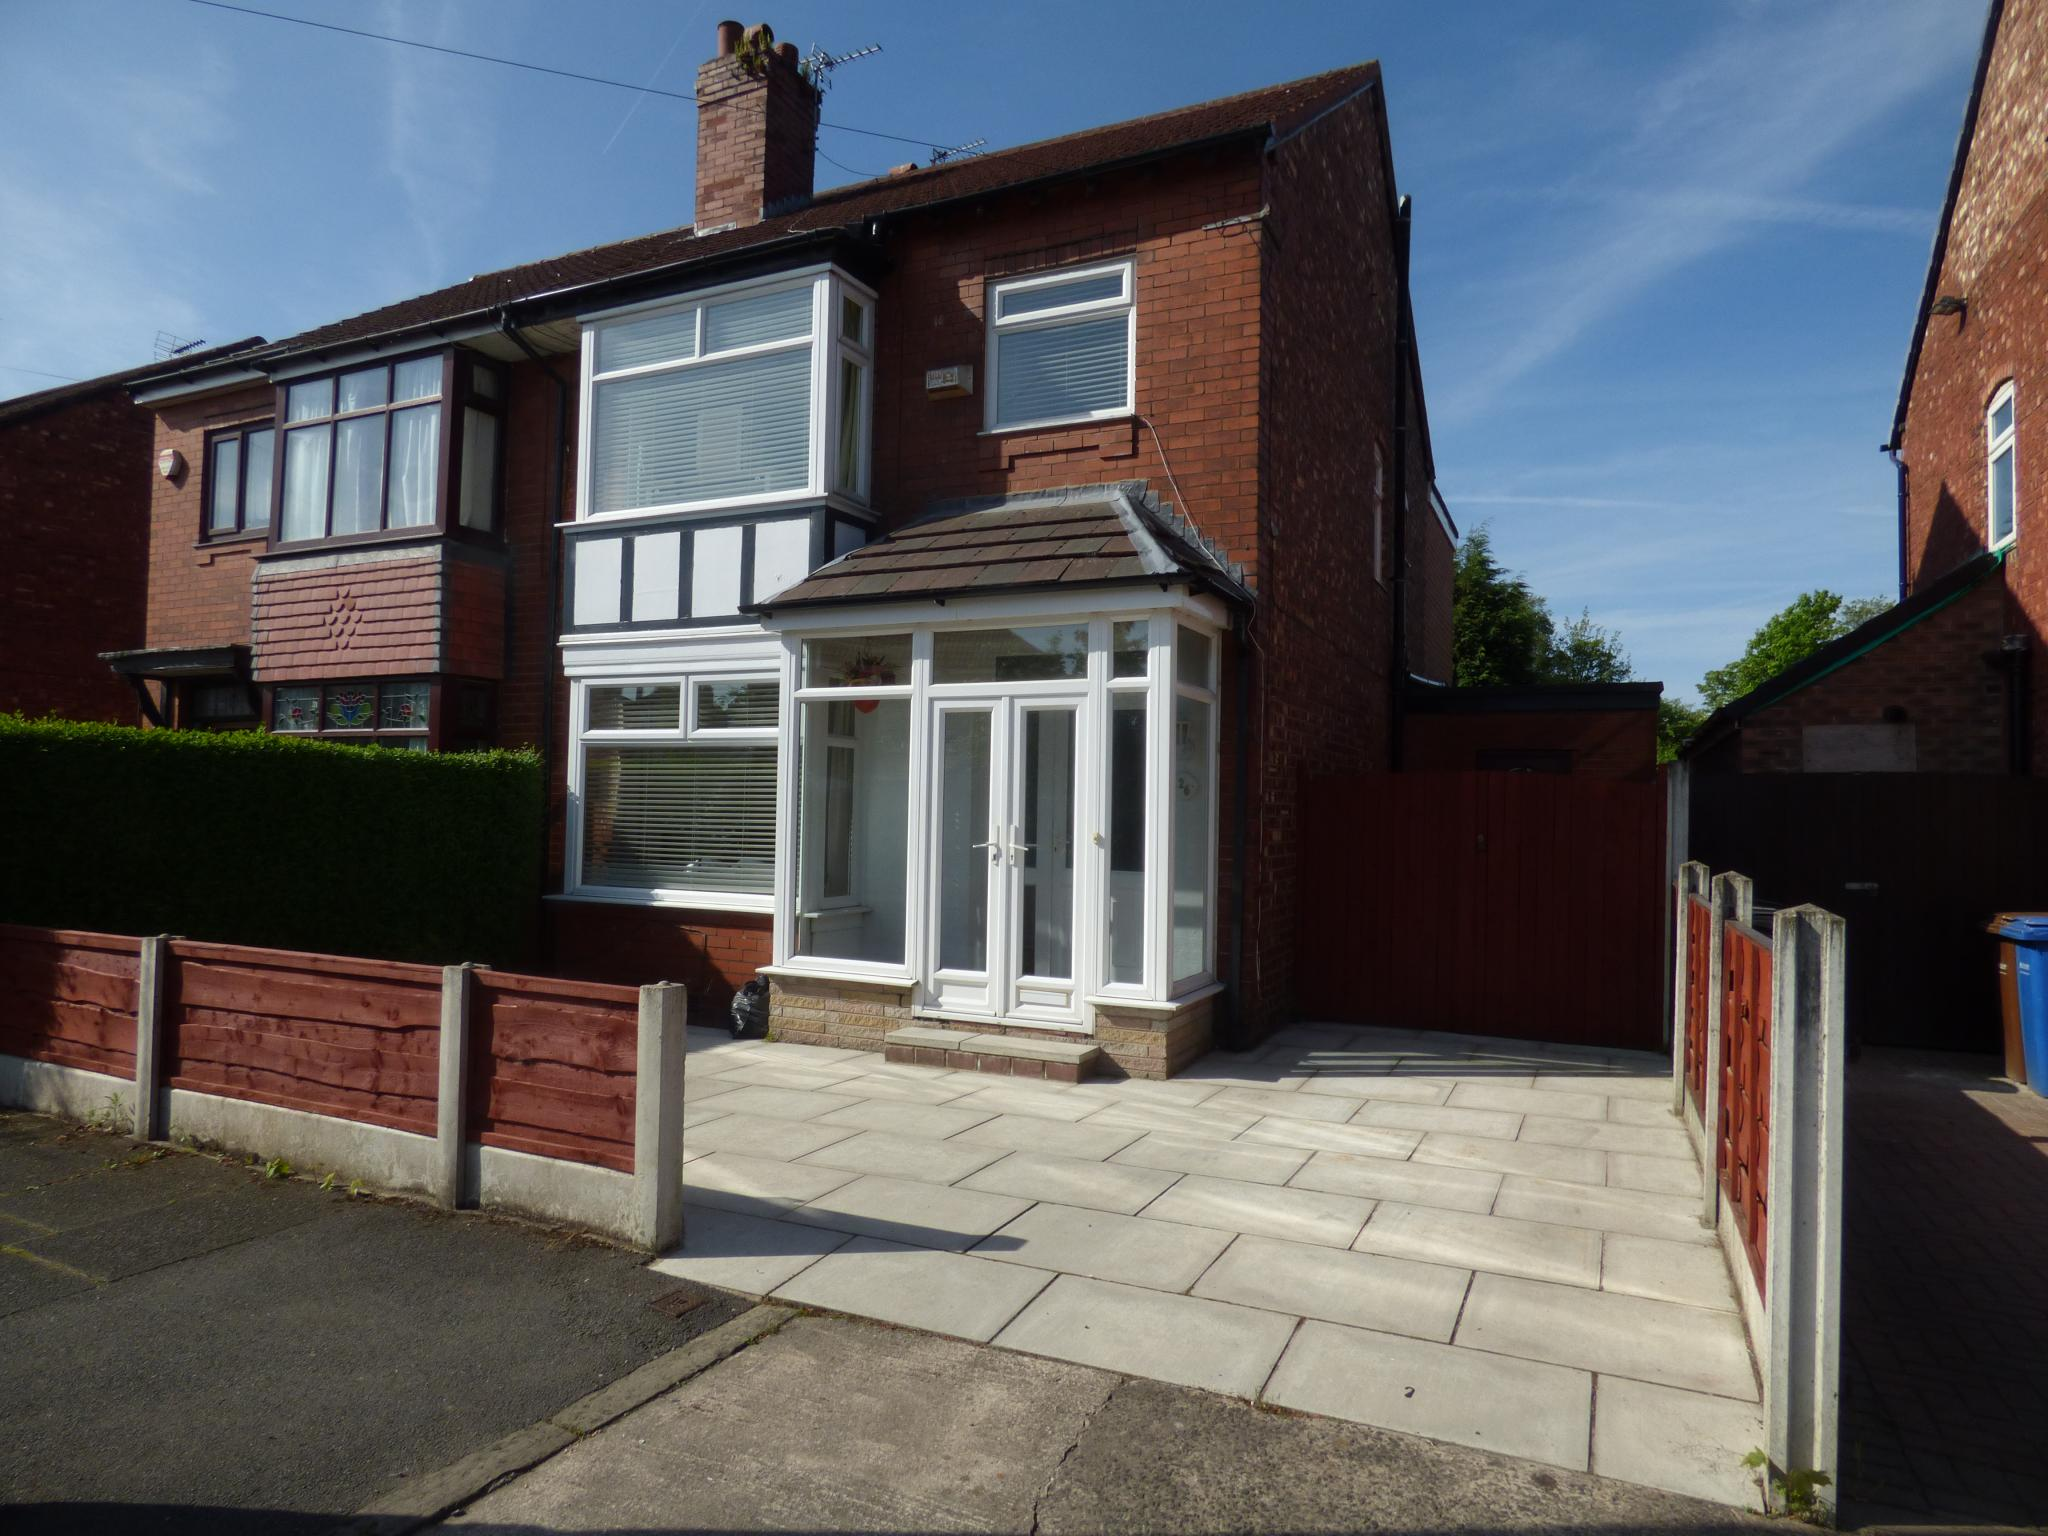 20 bedroom house. 4 Bedroom Semi detached House For Sale  Photograph 20 in 26 Akesmoor Drive